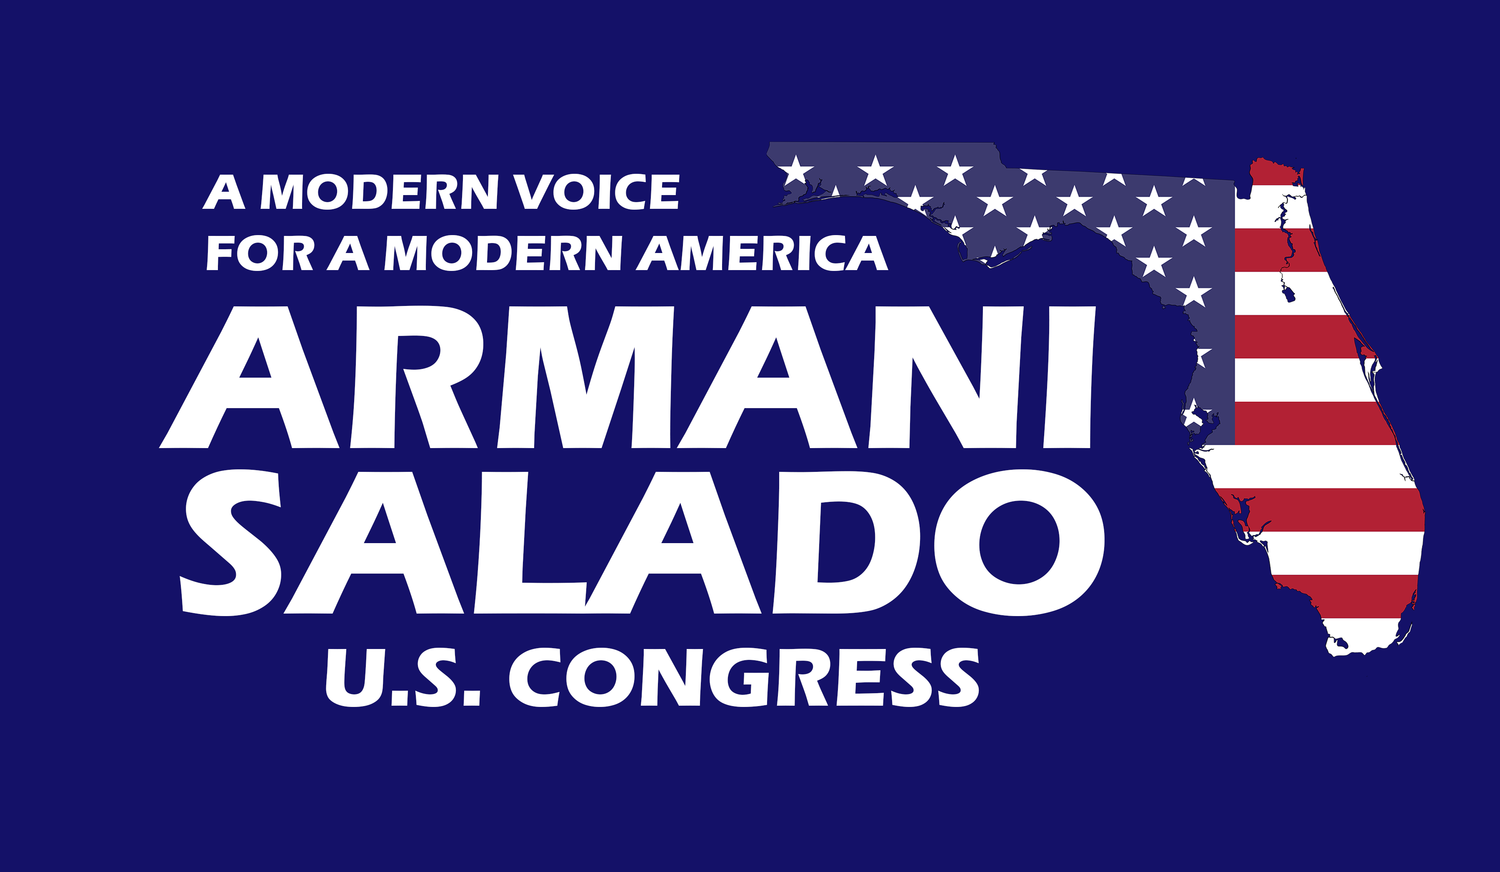 Armani Salado For U.S. Congress